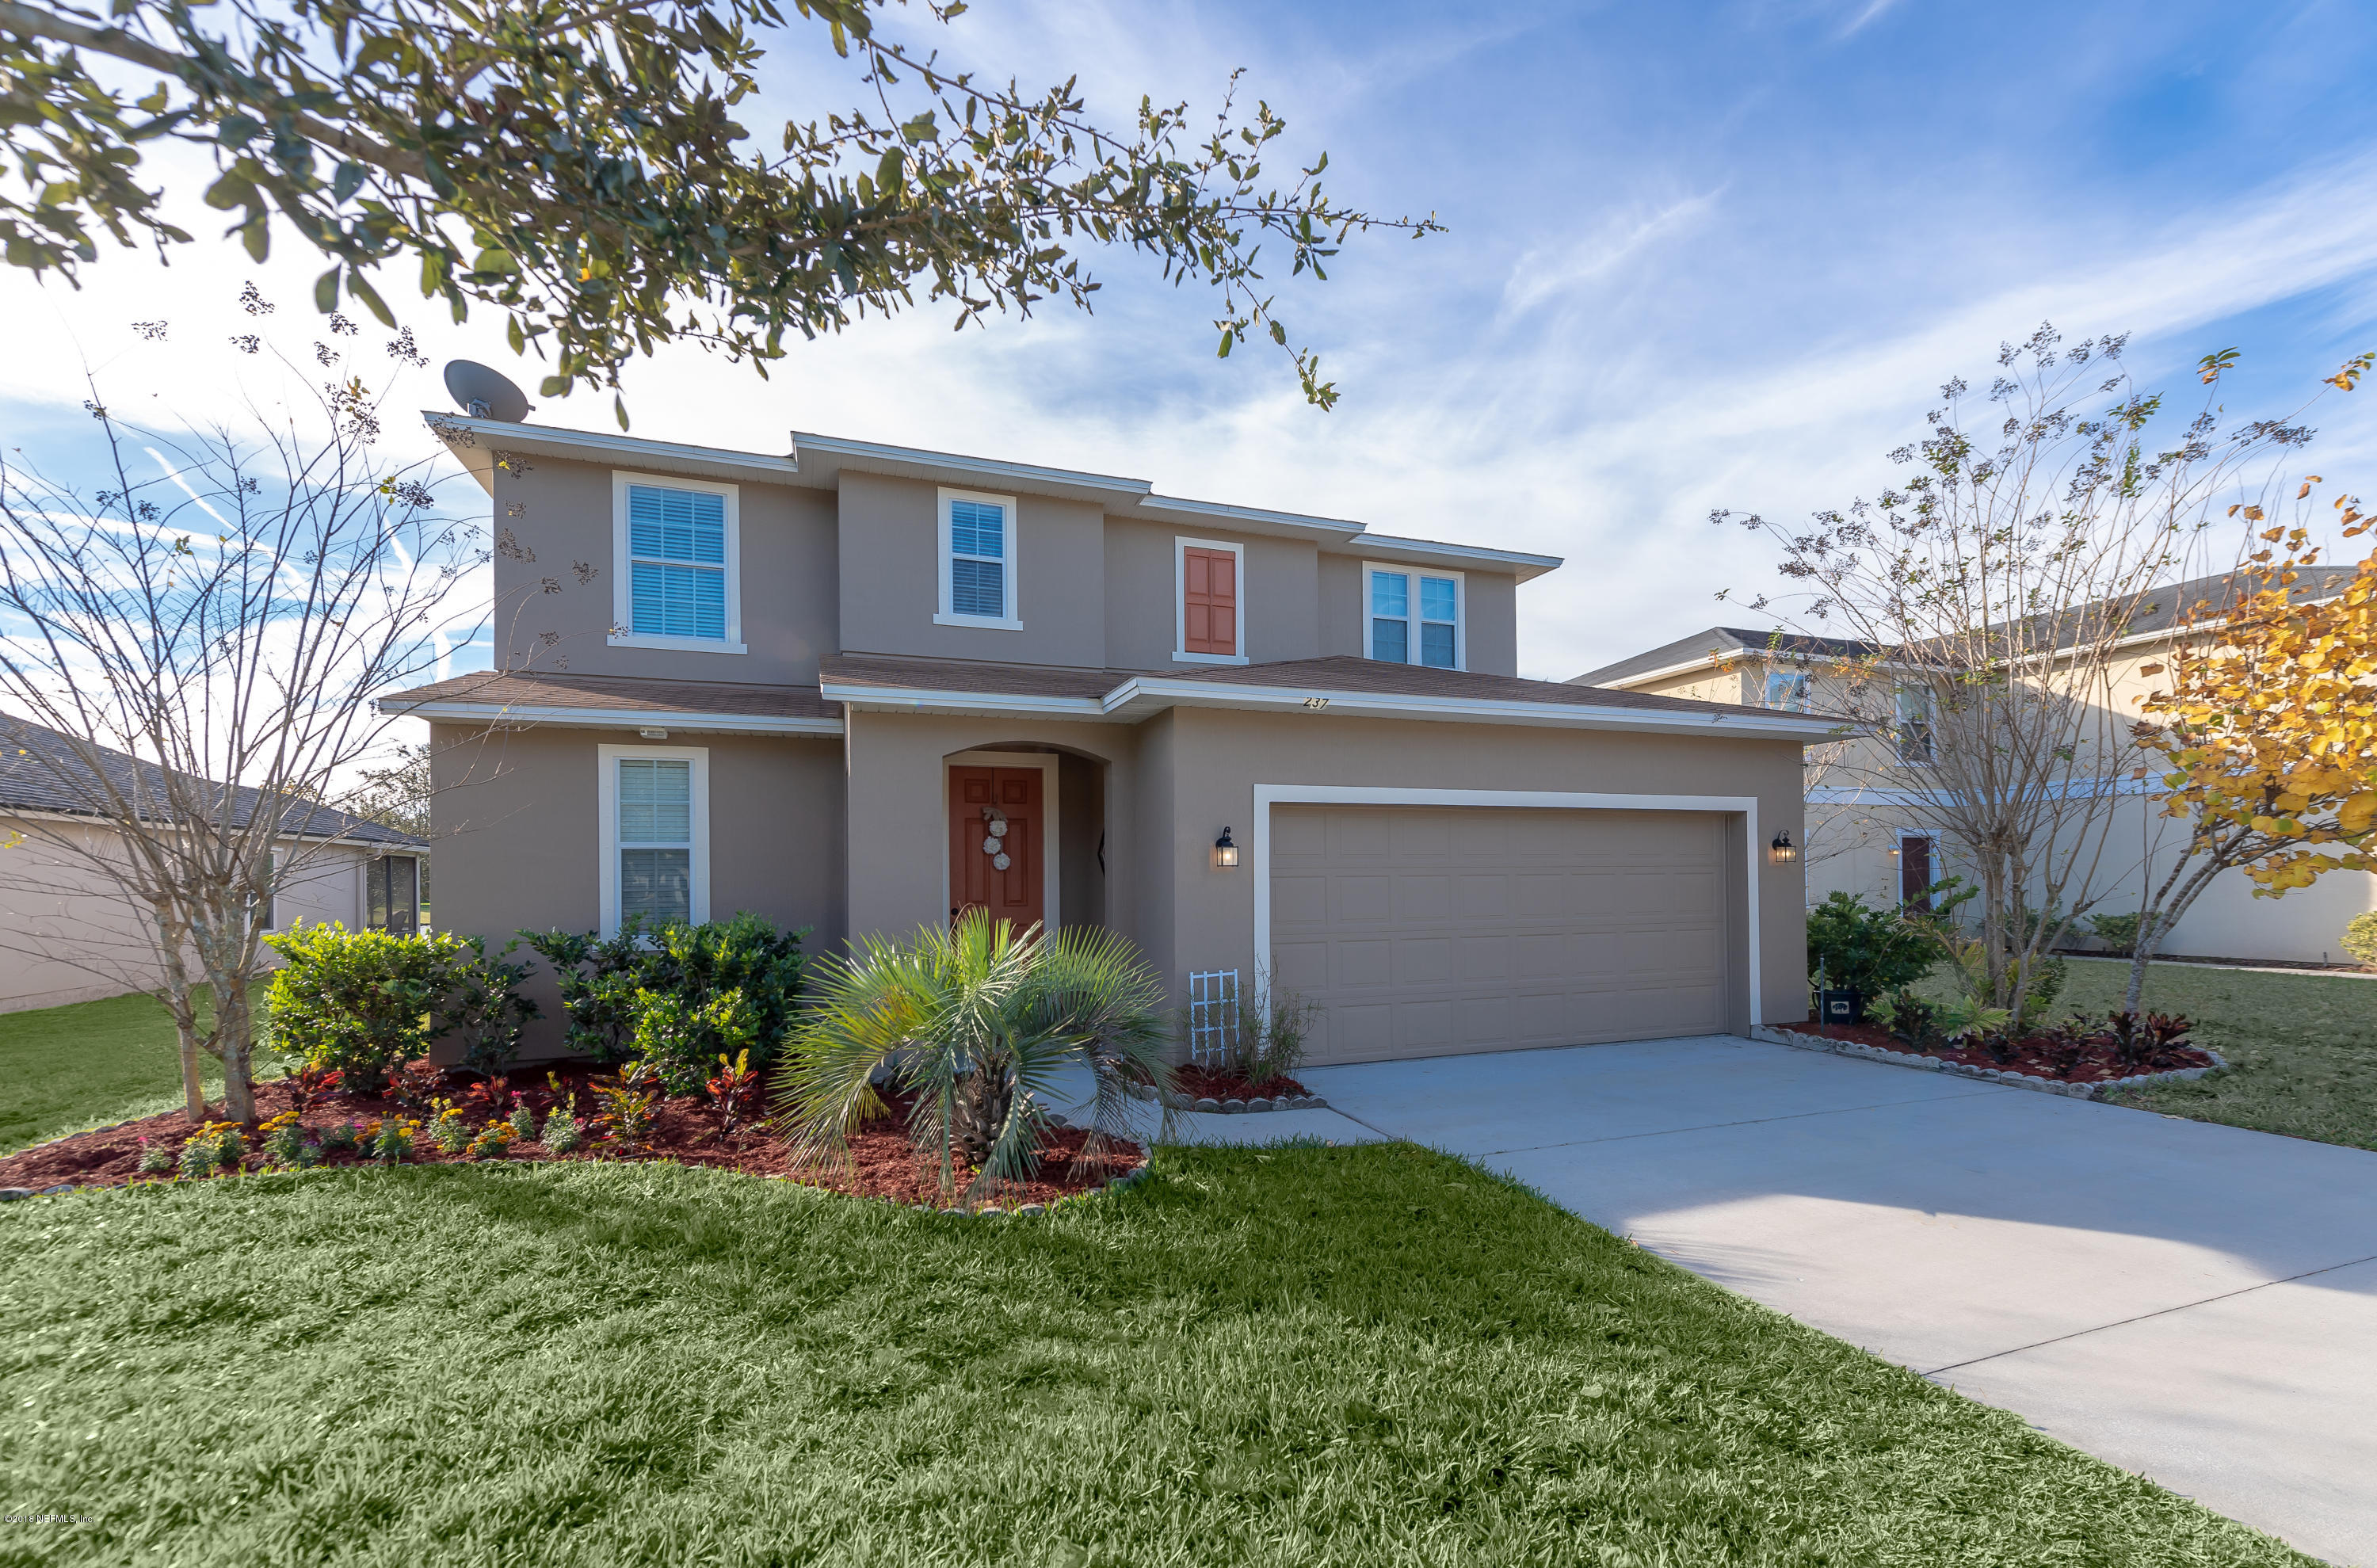 237 SUNSHINE, ST AUGUSTINE, FLORIDA 32086, 4 Bedrooms Bedrooms, ,2 BathroomsBathrooms,Residential - single family,For sale,SUNSHINE,970073